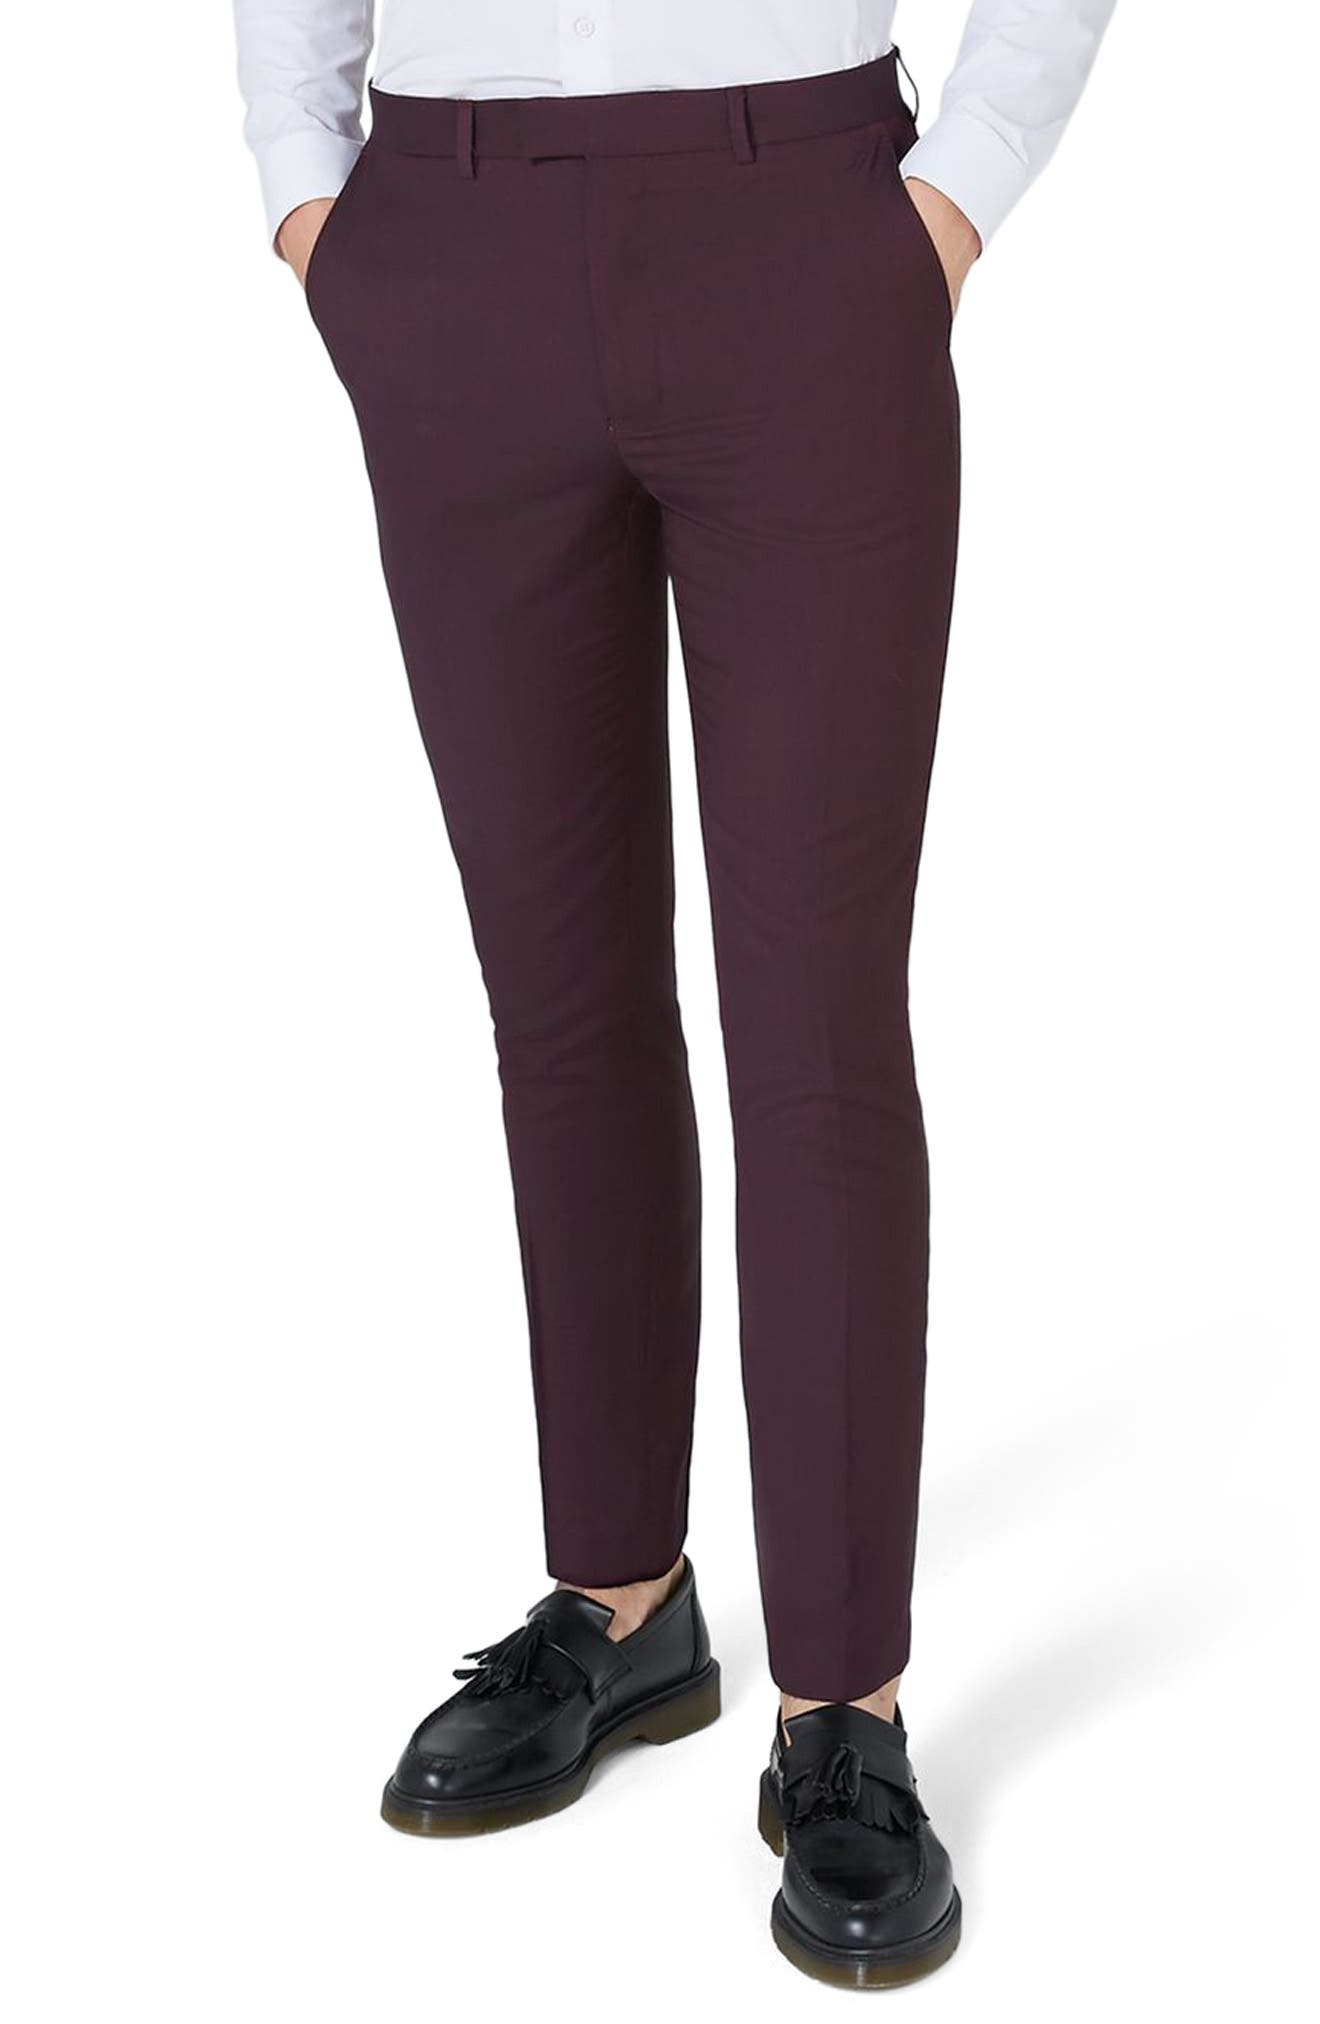 Skinny Fit Plum Suit Trousers,                             Main thumbnail 1, color,                             Plum